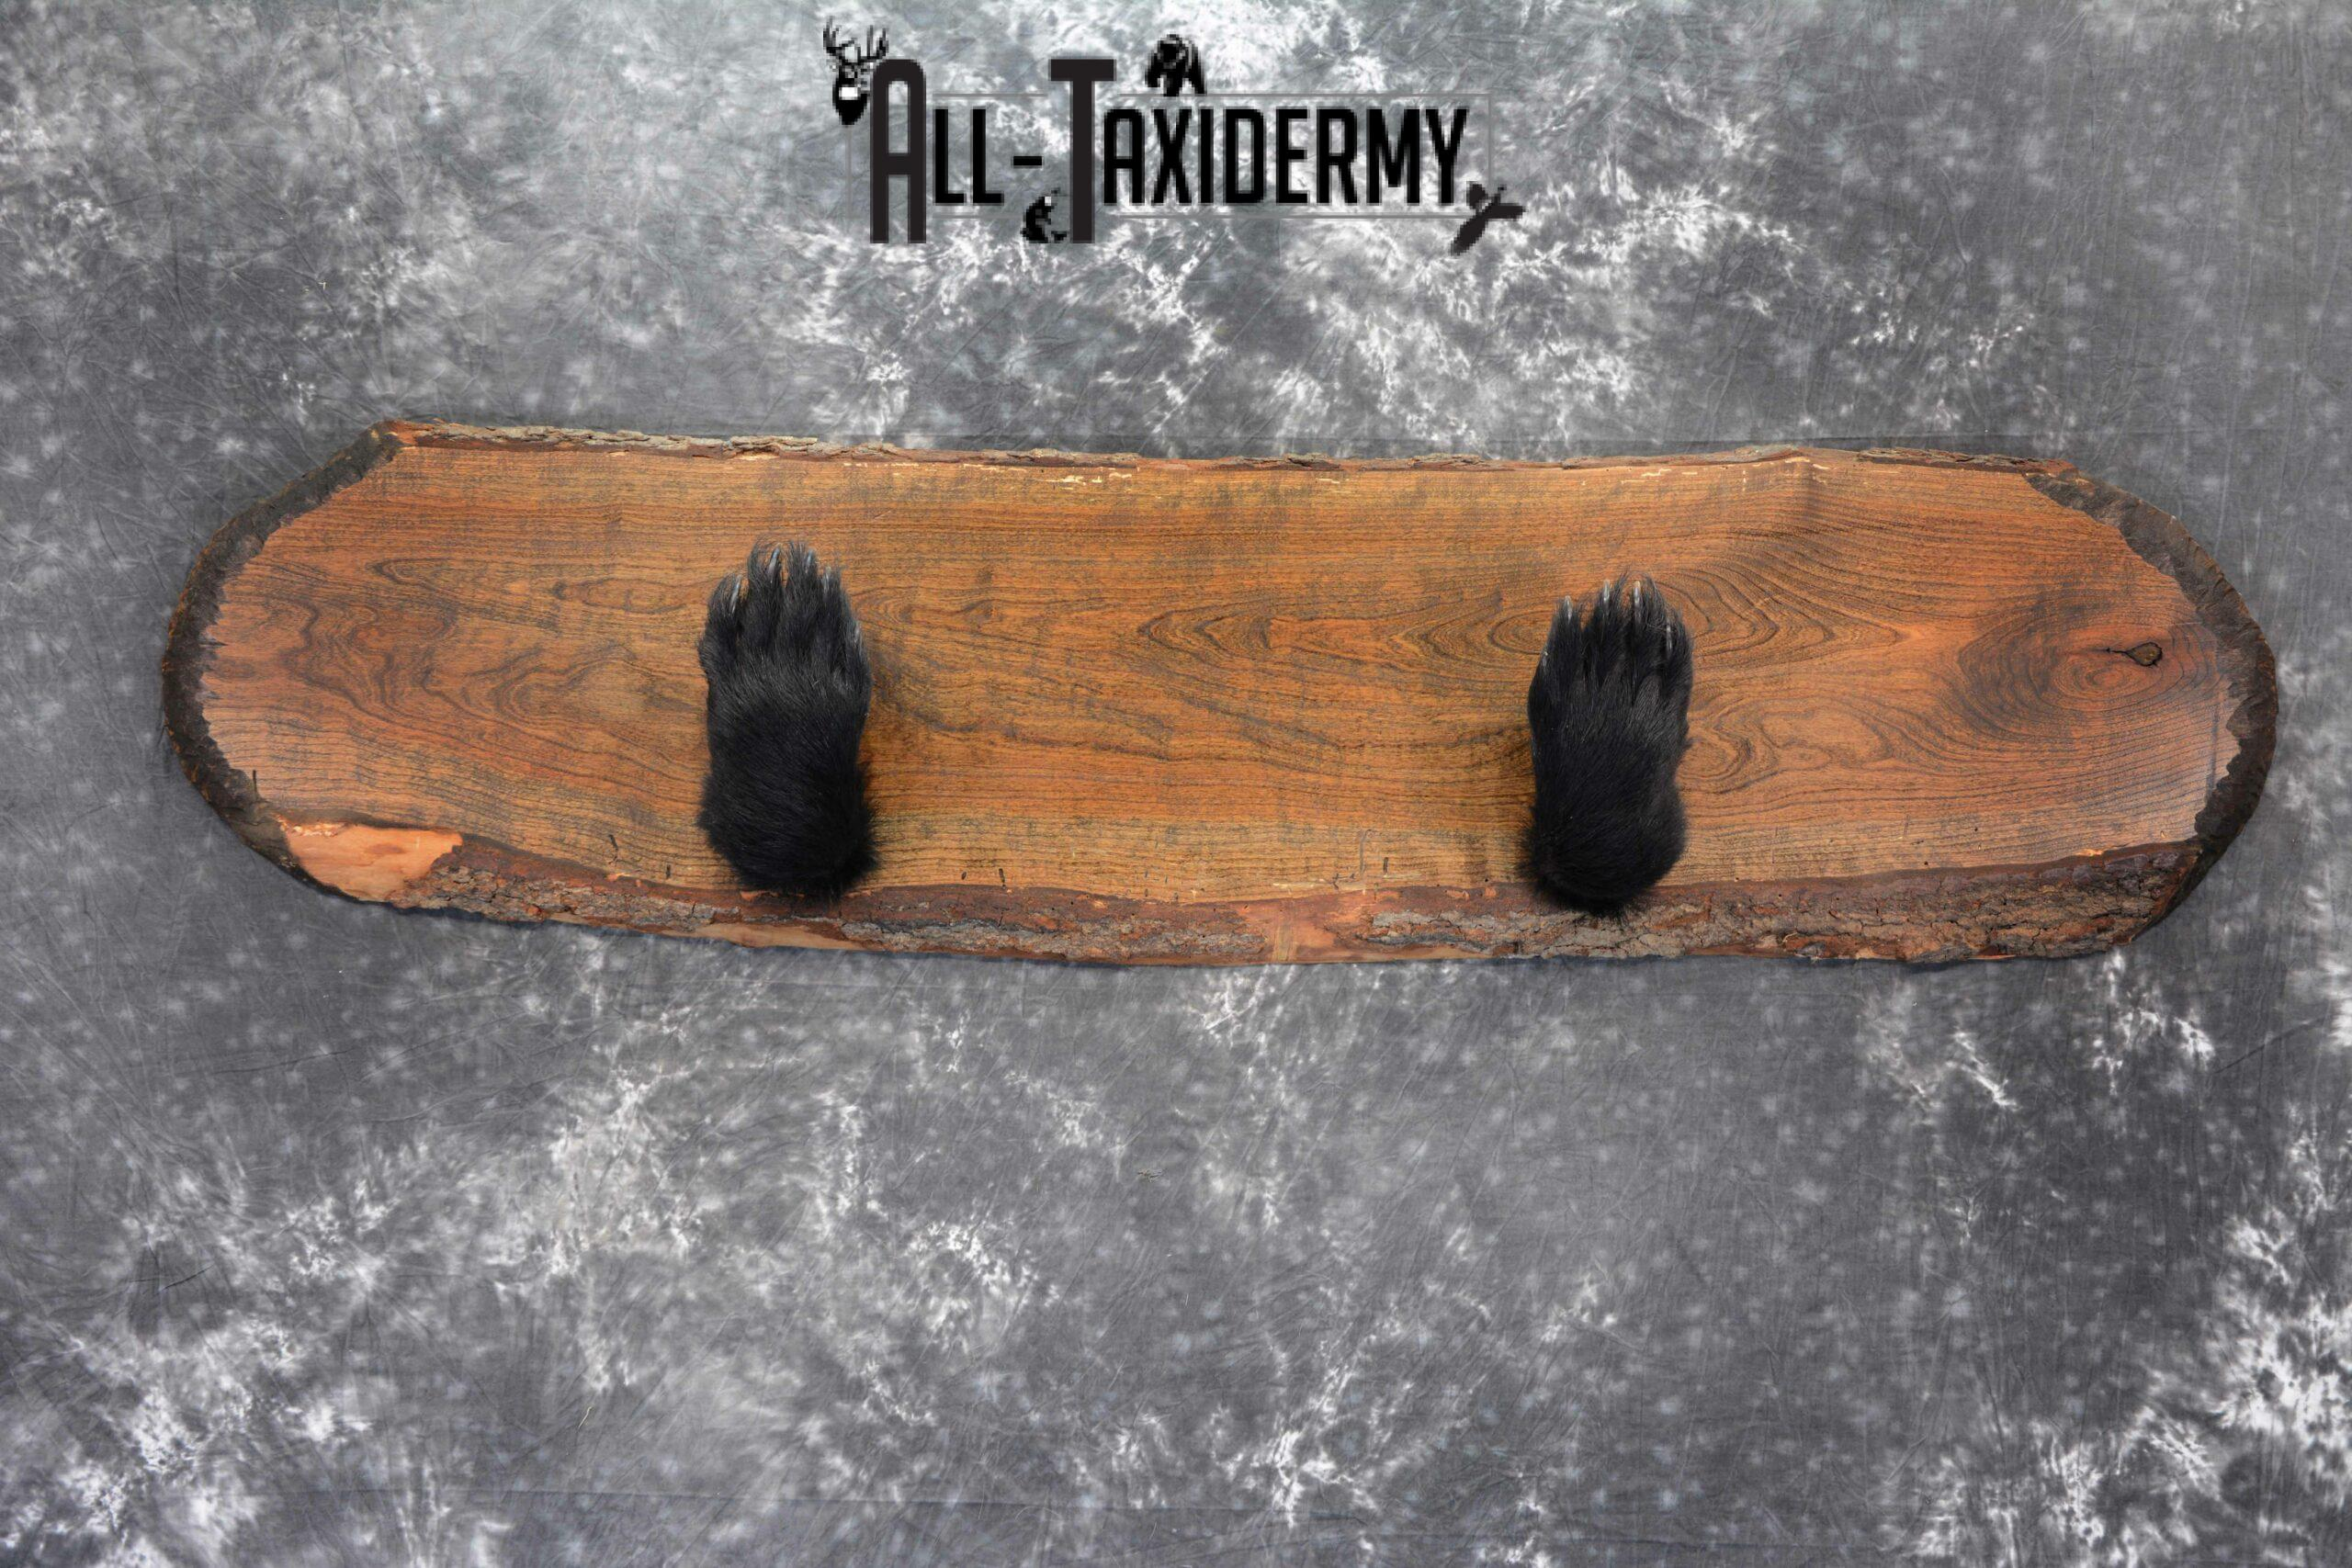 Black Bear Taxidermy paw gun holder for sale SKU 1045